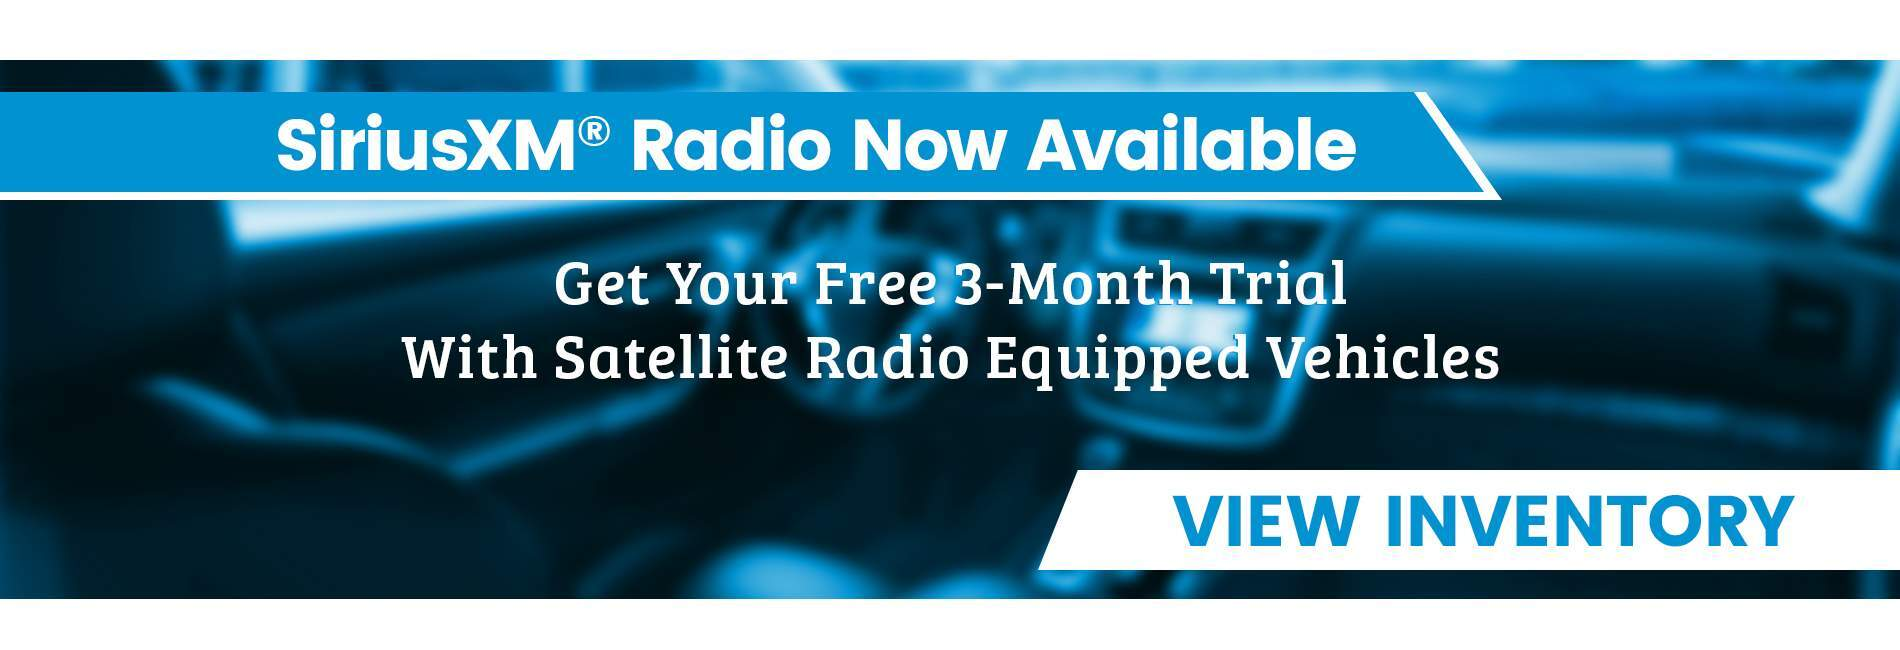 Free 3-month trial of SiriusXM® Radio when you choose Vehicles Direct in North Charleston SC